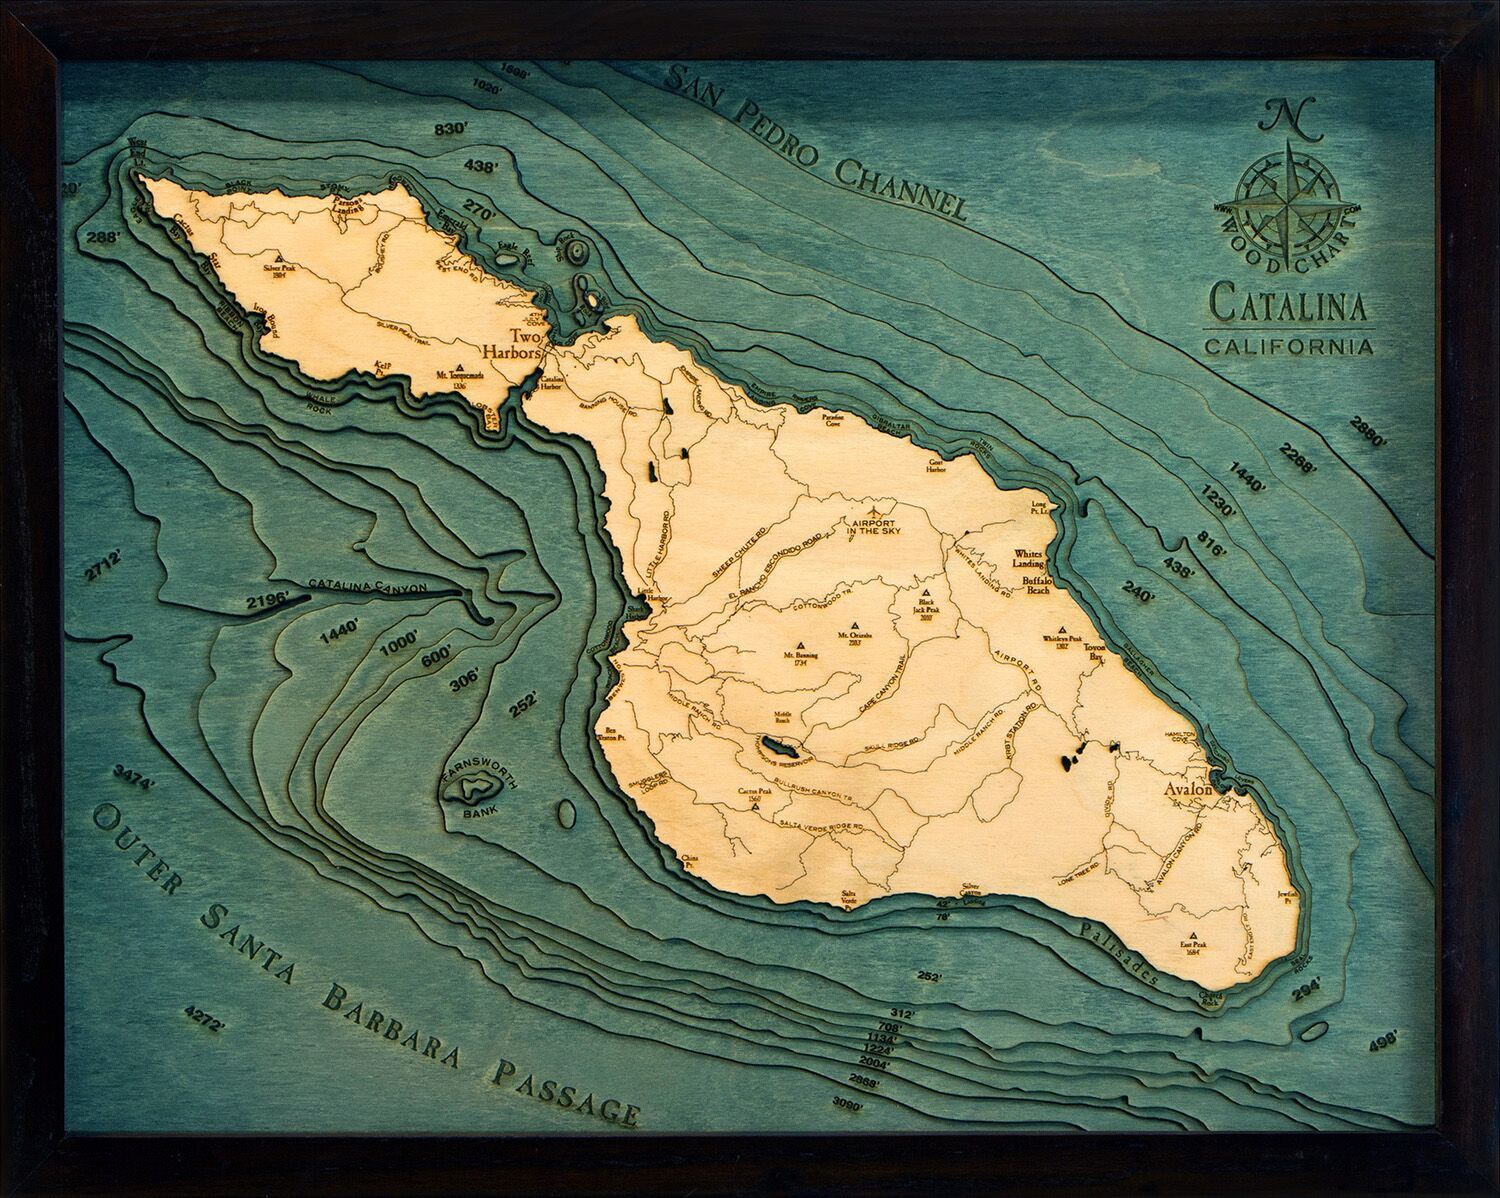 Bathymetric Map Catalina Island, California